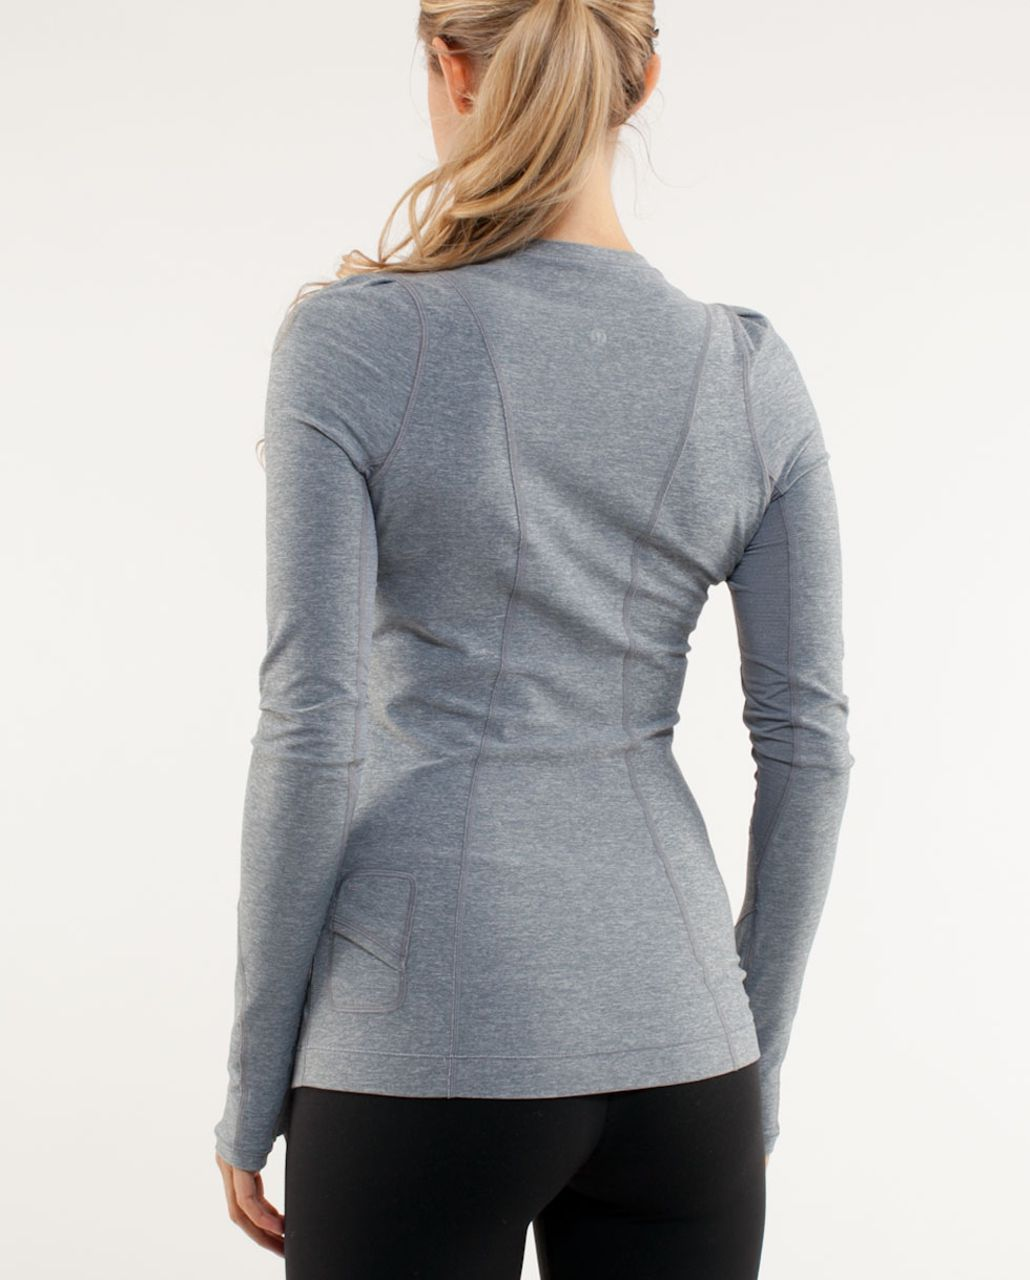 Lululemon Run:  Back On Track Long Sleeve Tech - Heathered Blurred Grey